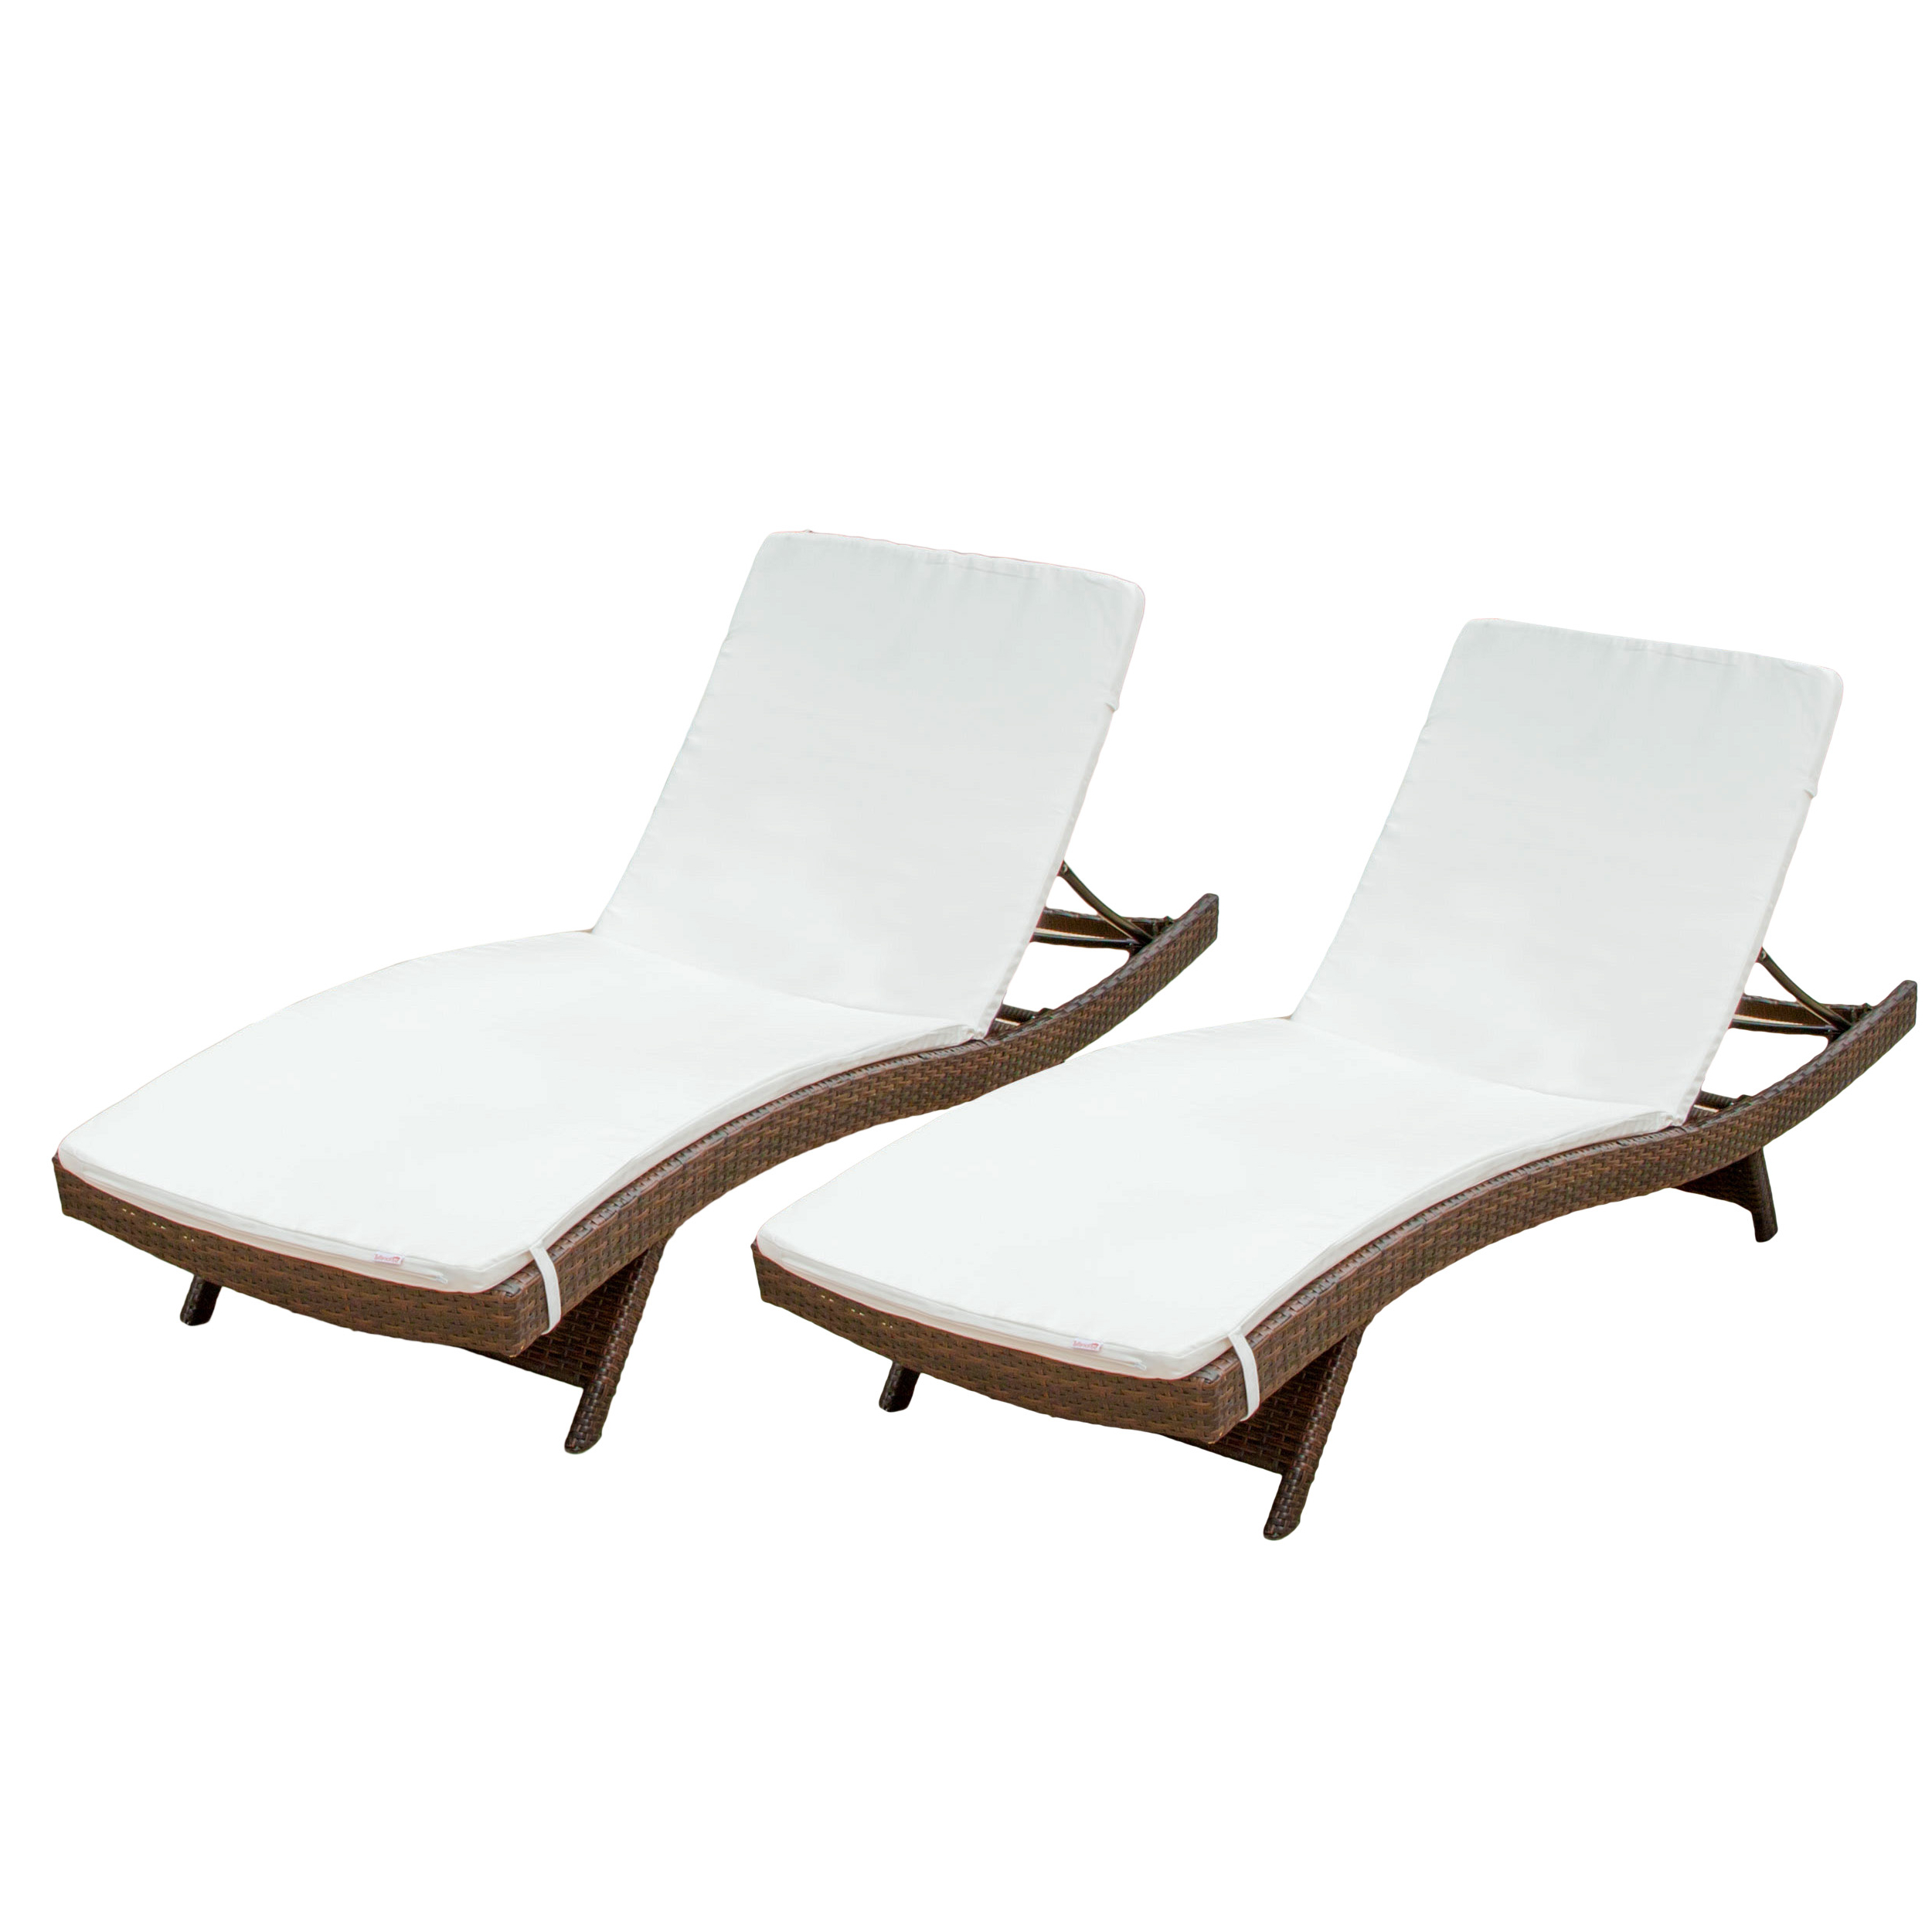 Well Known Outdoor Wicker Adjustable Chaise Lounges With Cushions With Regard To Outdoor Brown Wicker Adjustable Chaise Lounge With Cushions (Set Of 2) (View 25 of 25)